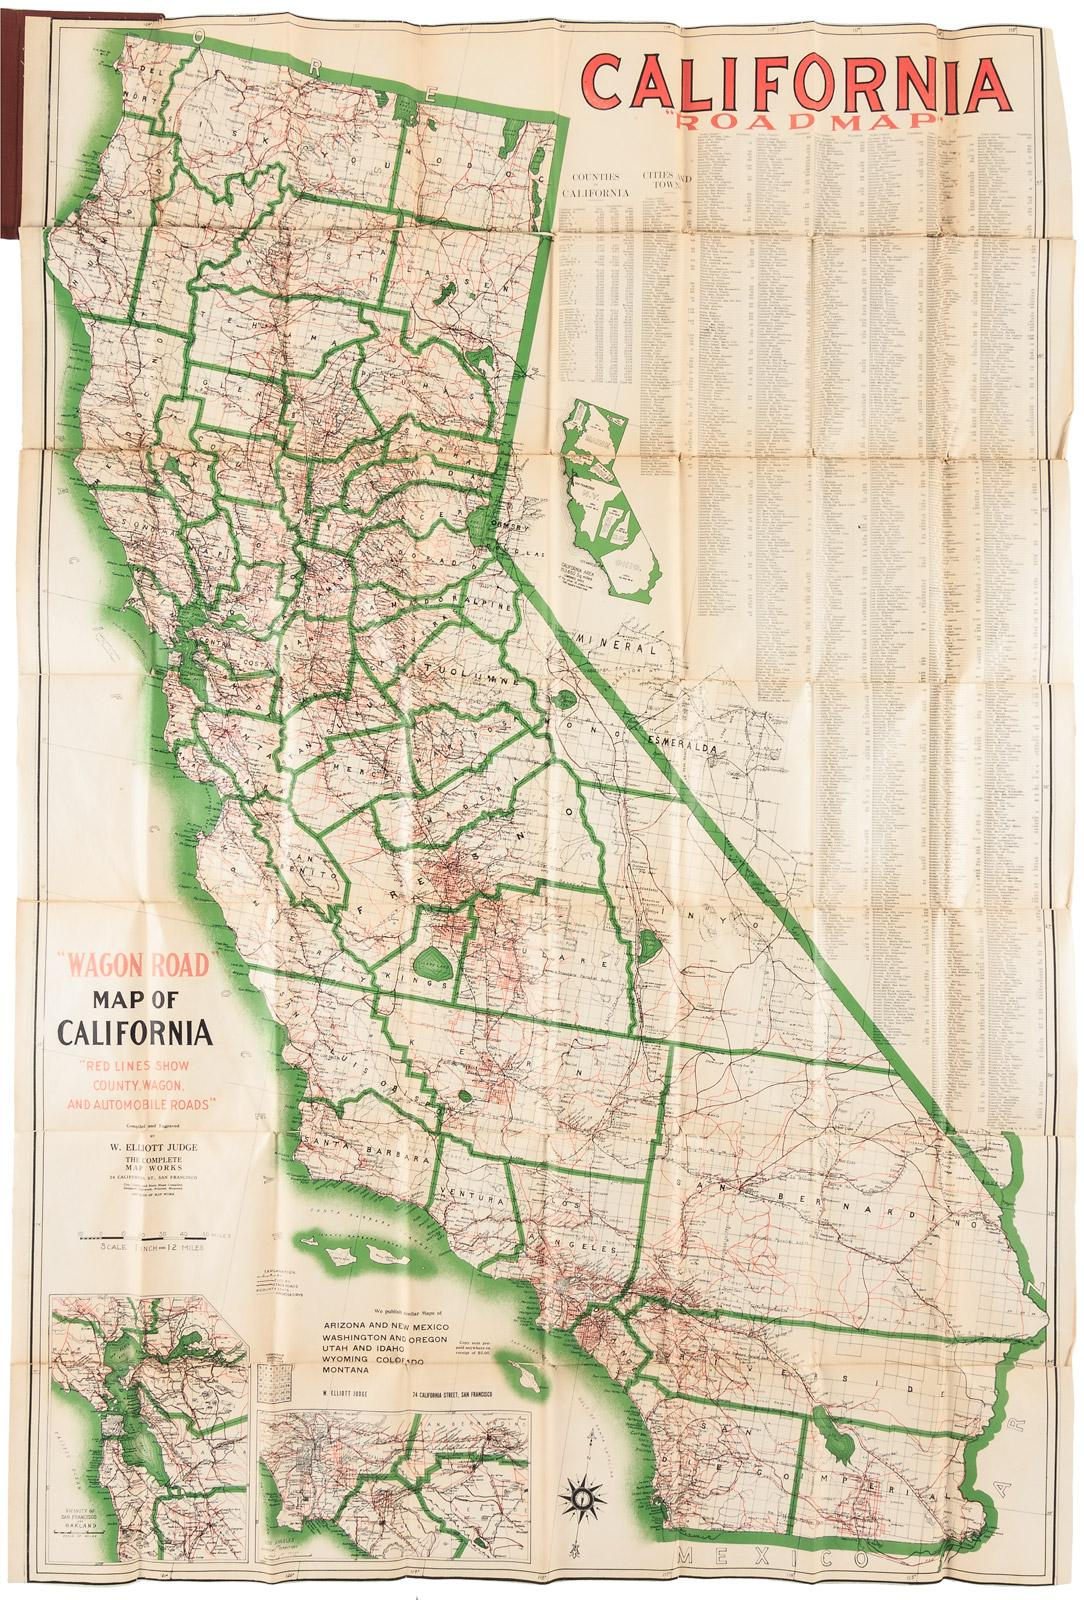 California Road Map Wagon Road Map Of California Red Lines Show